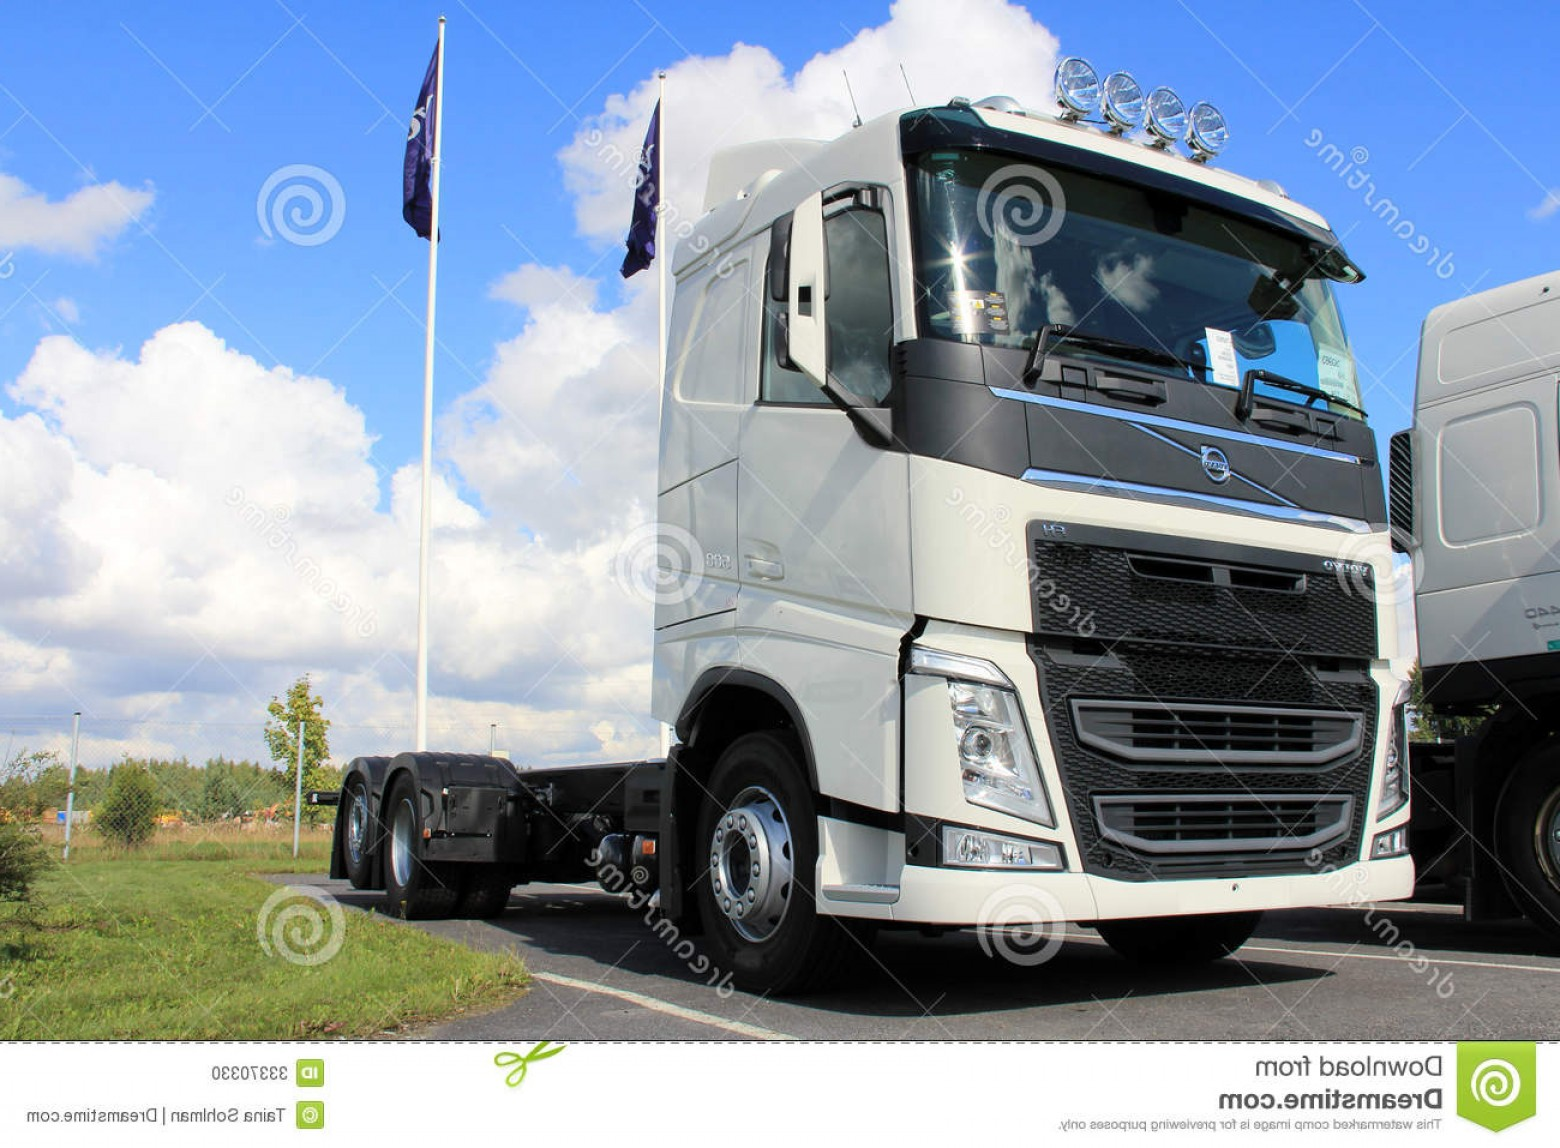 Volvo FH Vector: Stock Photo White New Volvo Fh Truck Lieto Finland August August Lieto Finland Trucks Range Goes Public Display First Time Image